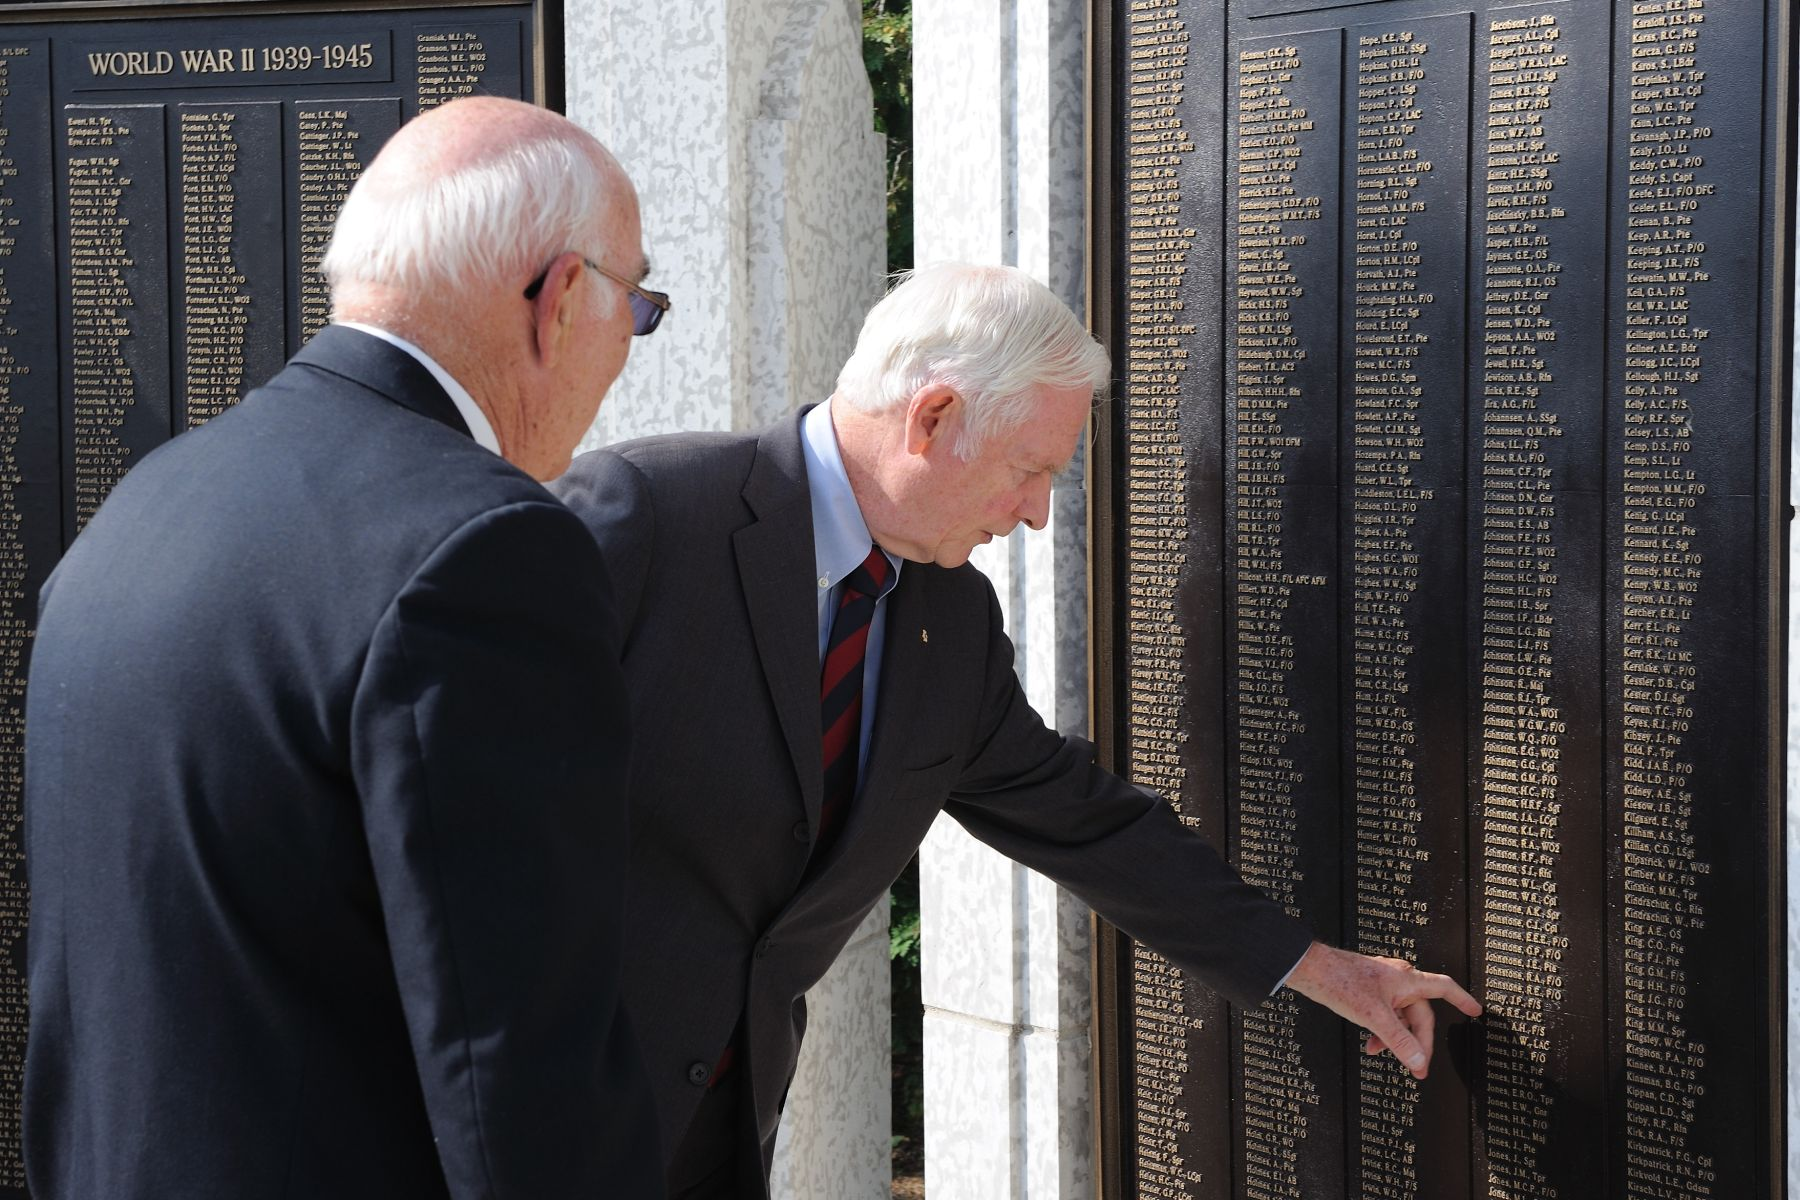 Their Excellencies, along with the Premier of Saskatchewan (left), then visited the Saskatchewan War Memorial. The Memorial honours men and women in uniform who have perished, as well as nursing sisters for their contributions during conflicts.